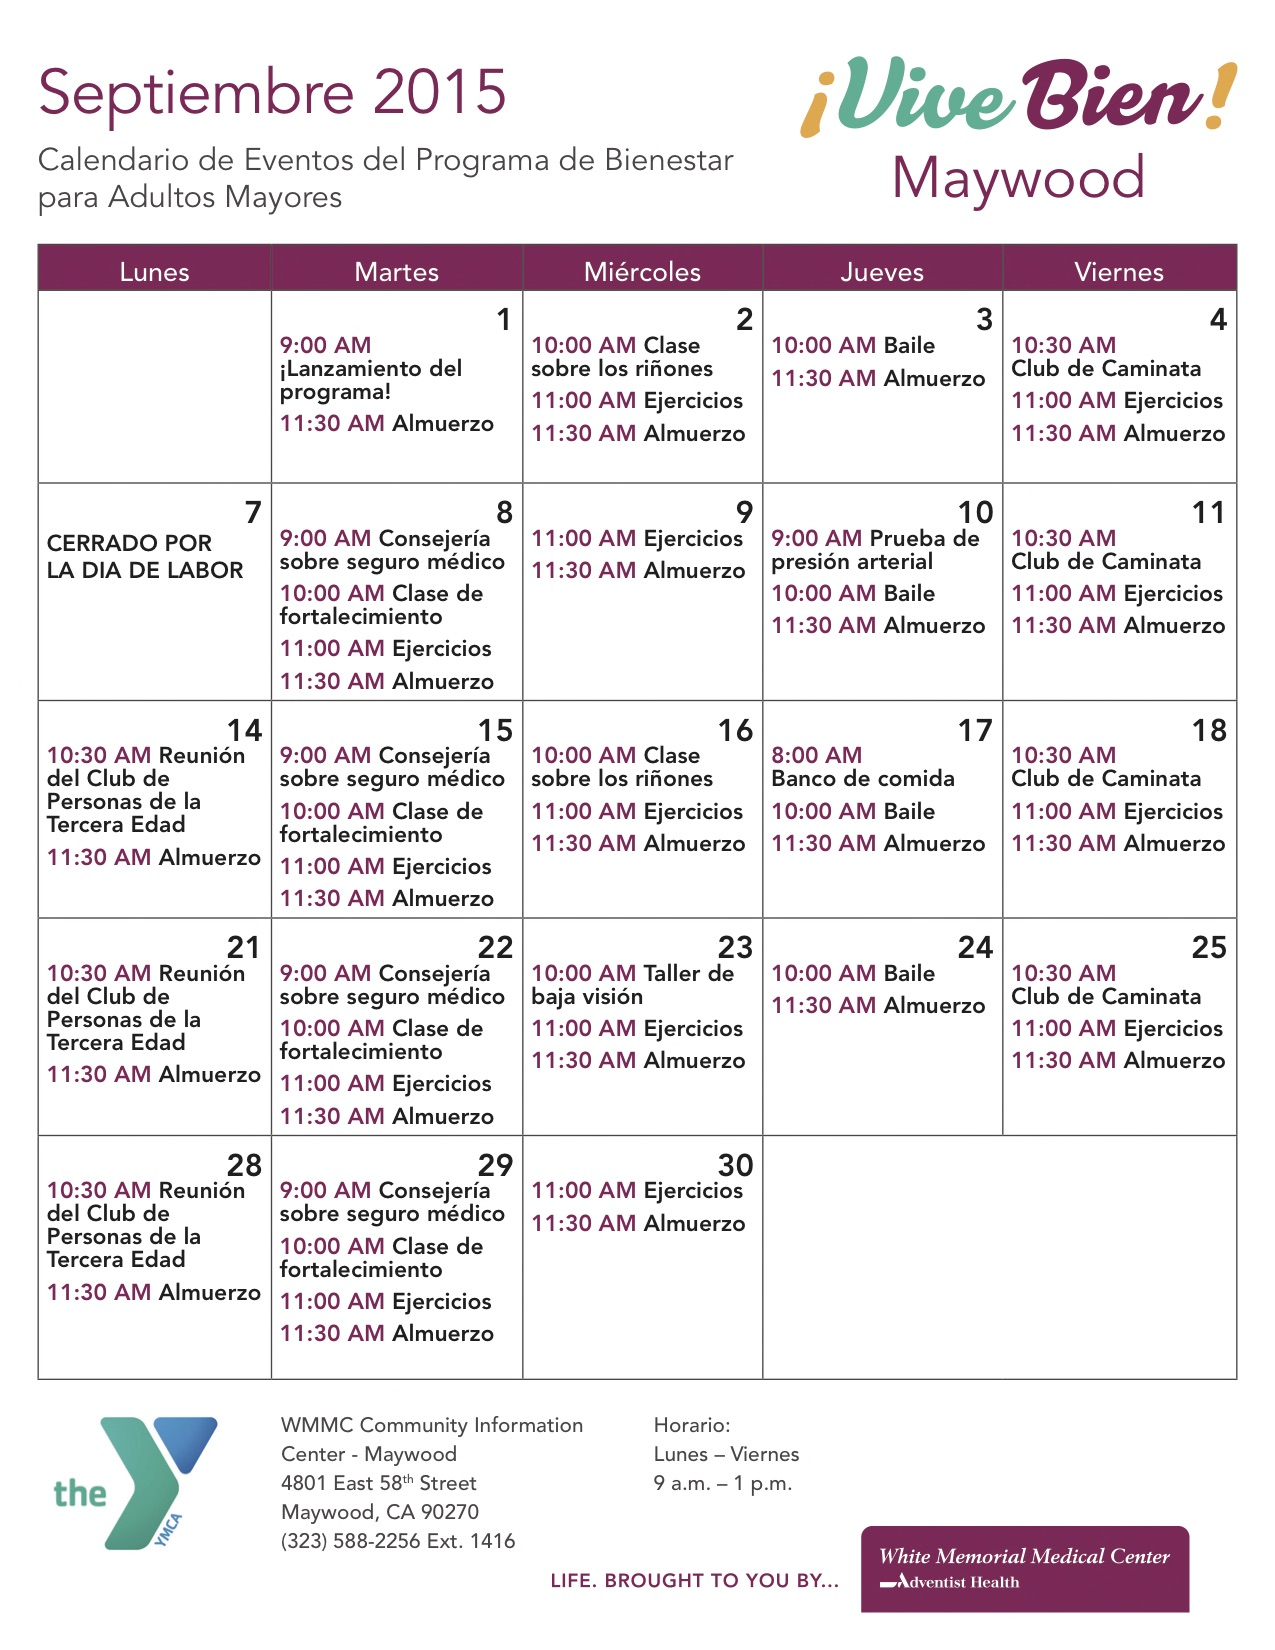 september 2015 spanish vive bien events calendar